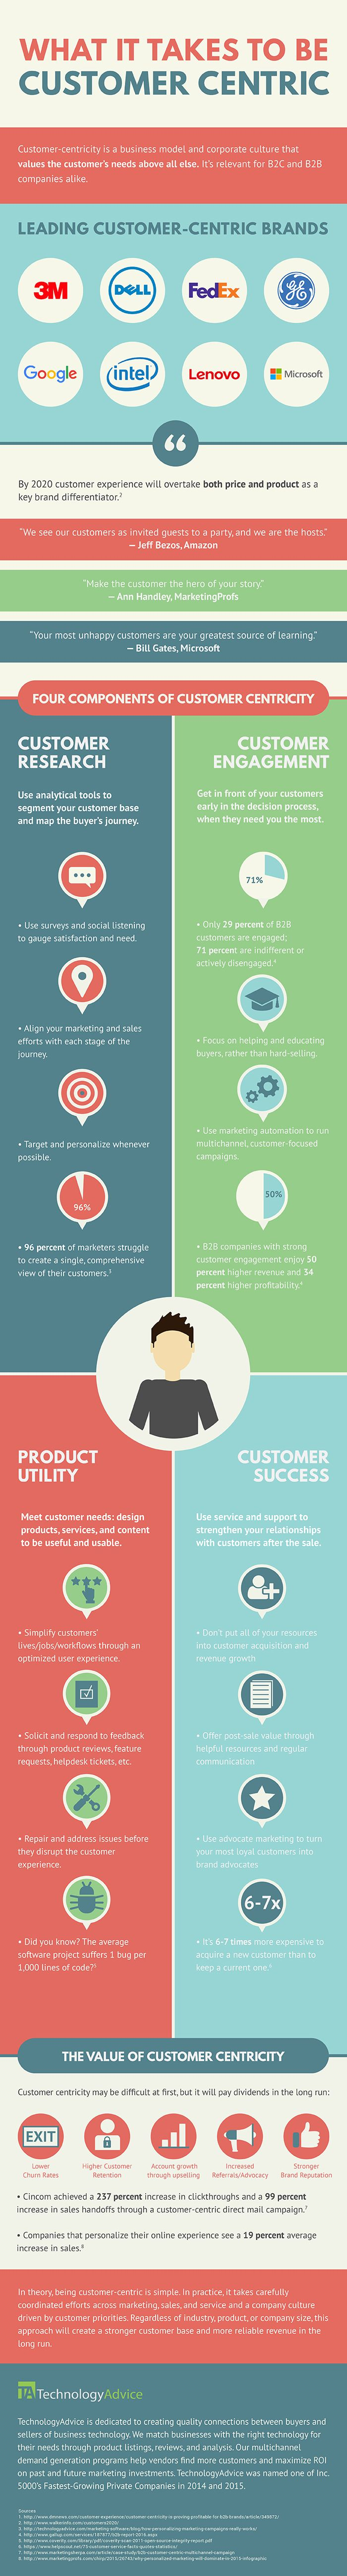 Infographic: What It Takes to Be Customer-Centric